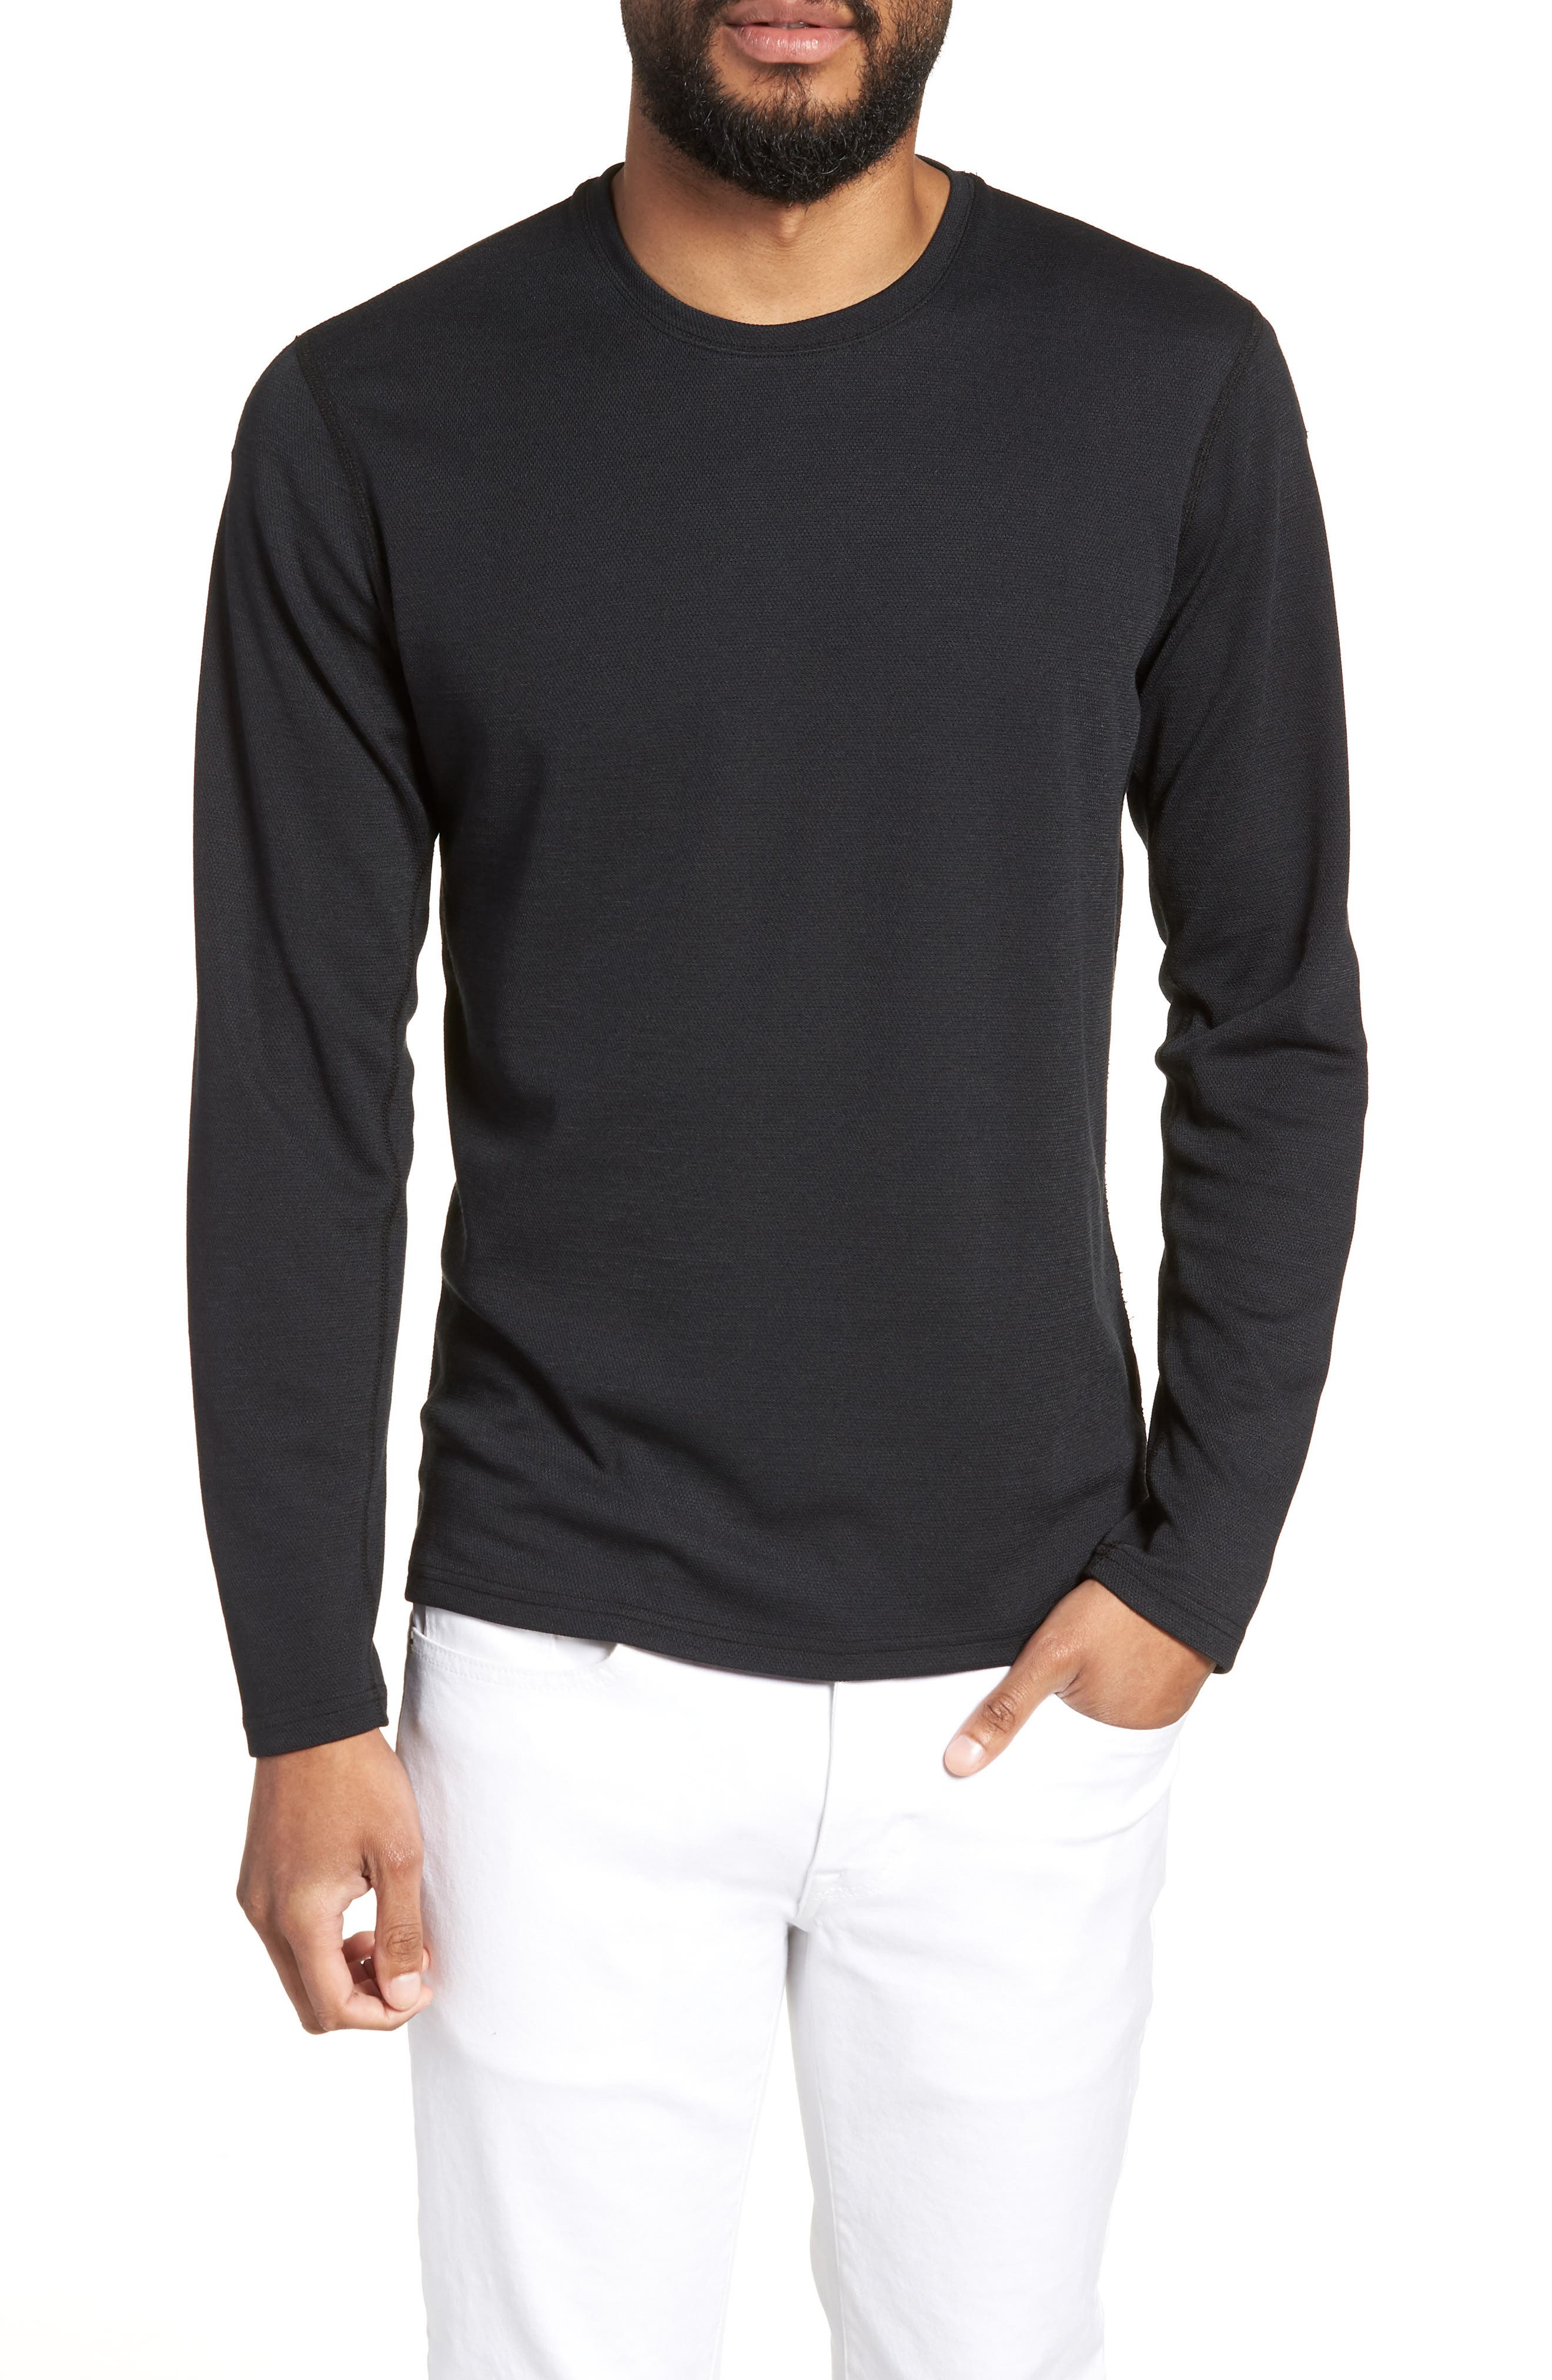 REIGNING CHAMP POWER DRY LONG SLEEVE SHIRT